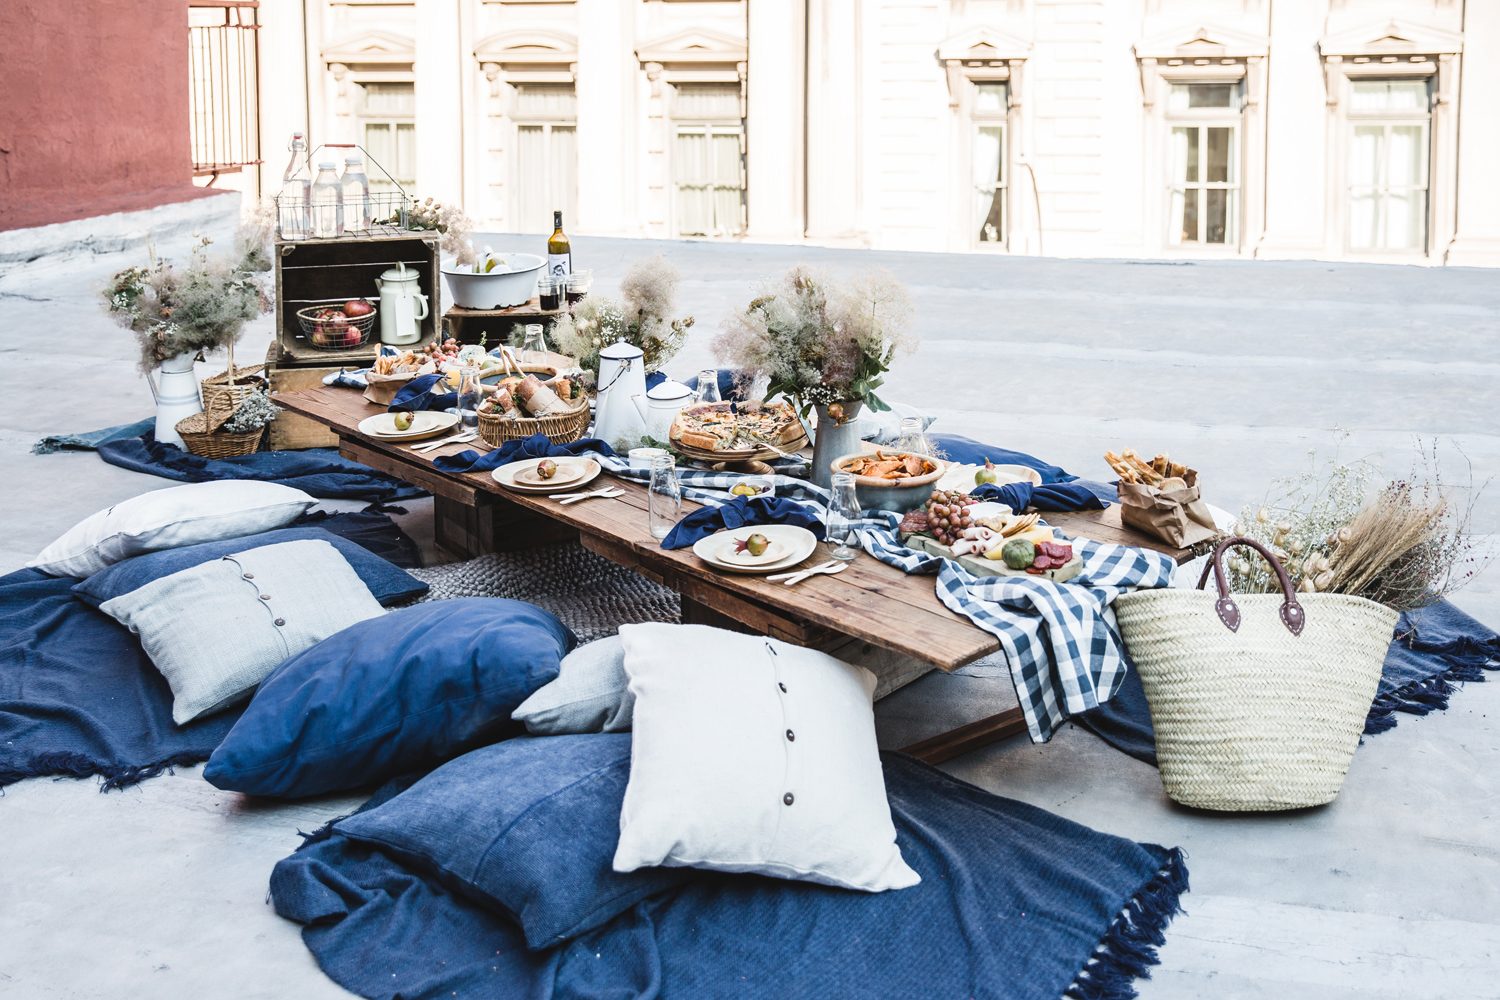 blue pillows and blankets rooftop picnic